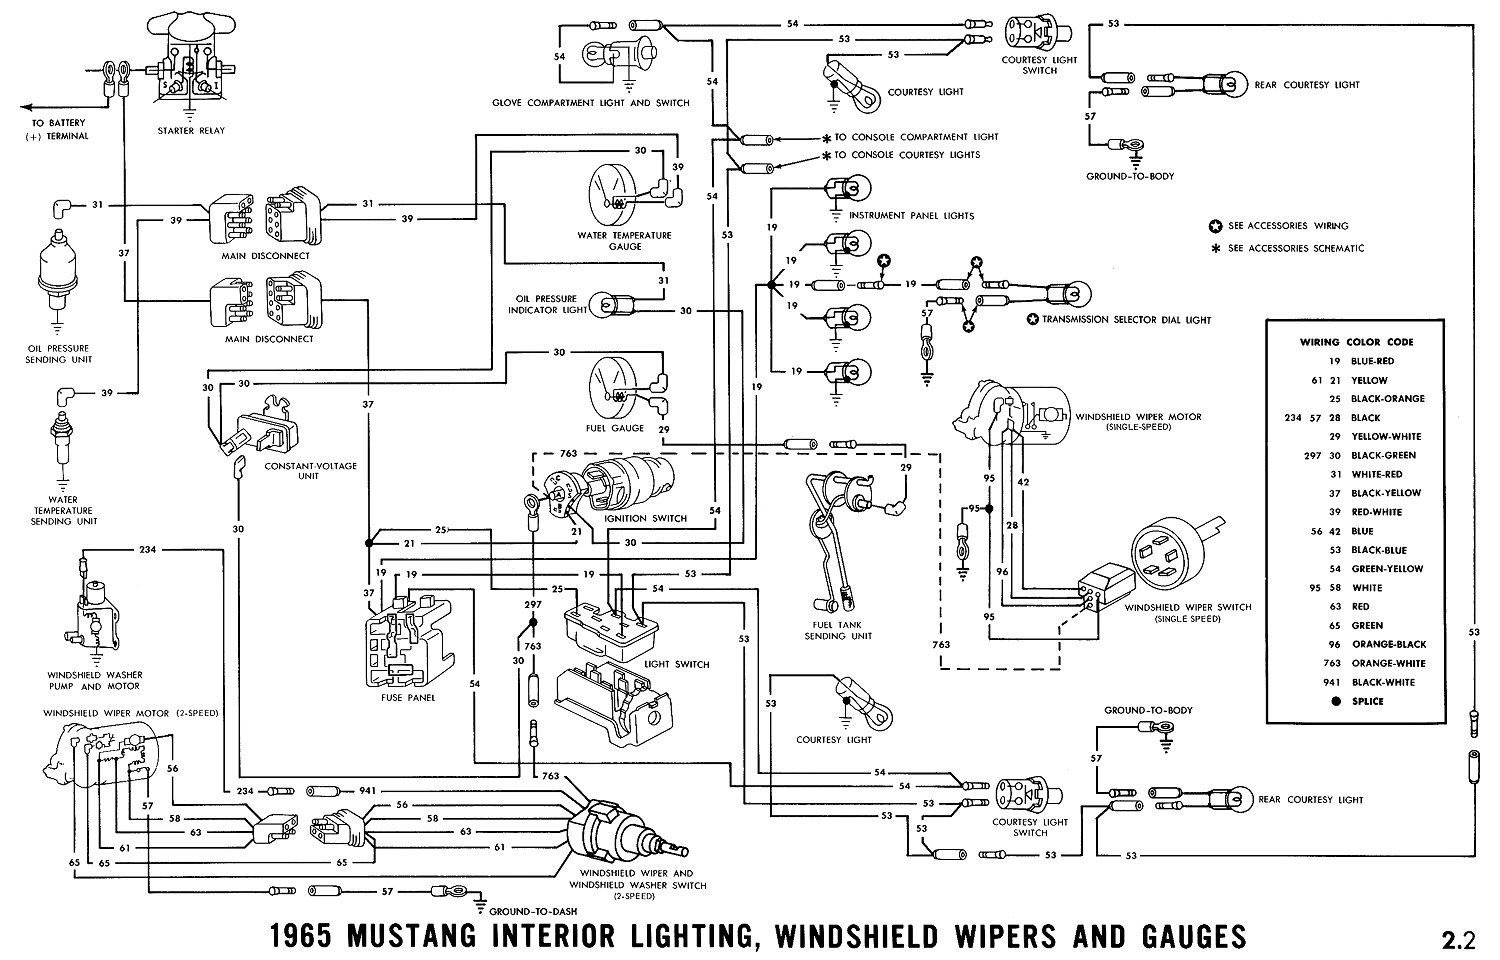 1965g 1965 mustang wiring diagrams average joe restoration 1965 ford mustang wiring diagrams at mifinder.co